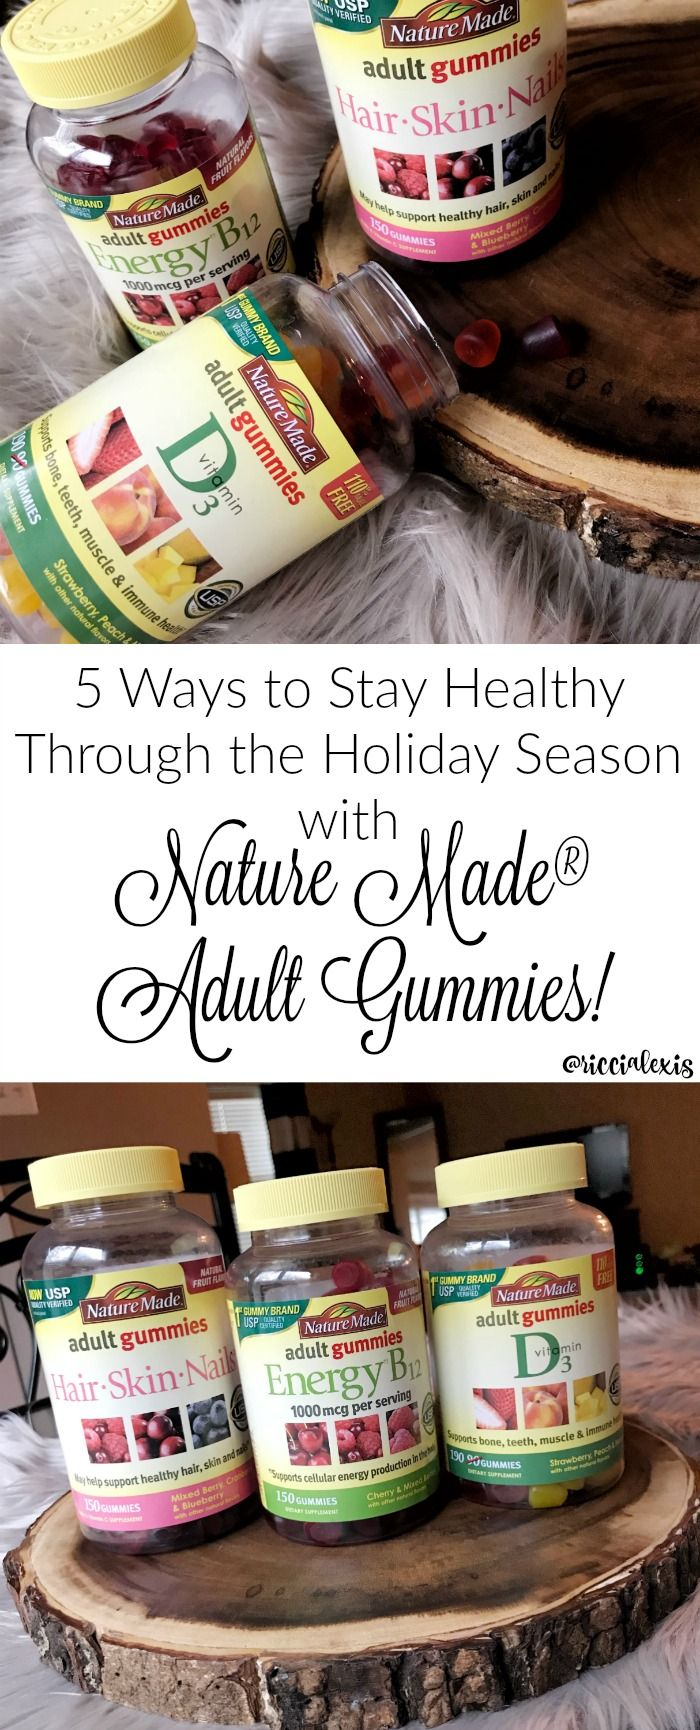 Communication on this topic: 5 Ways To Eat Healthy This Holiday, 5-ways-to-eat-healthy-this-holiday/